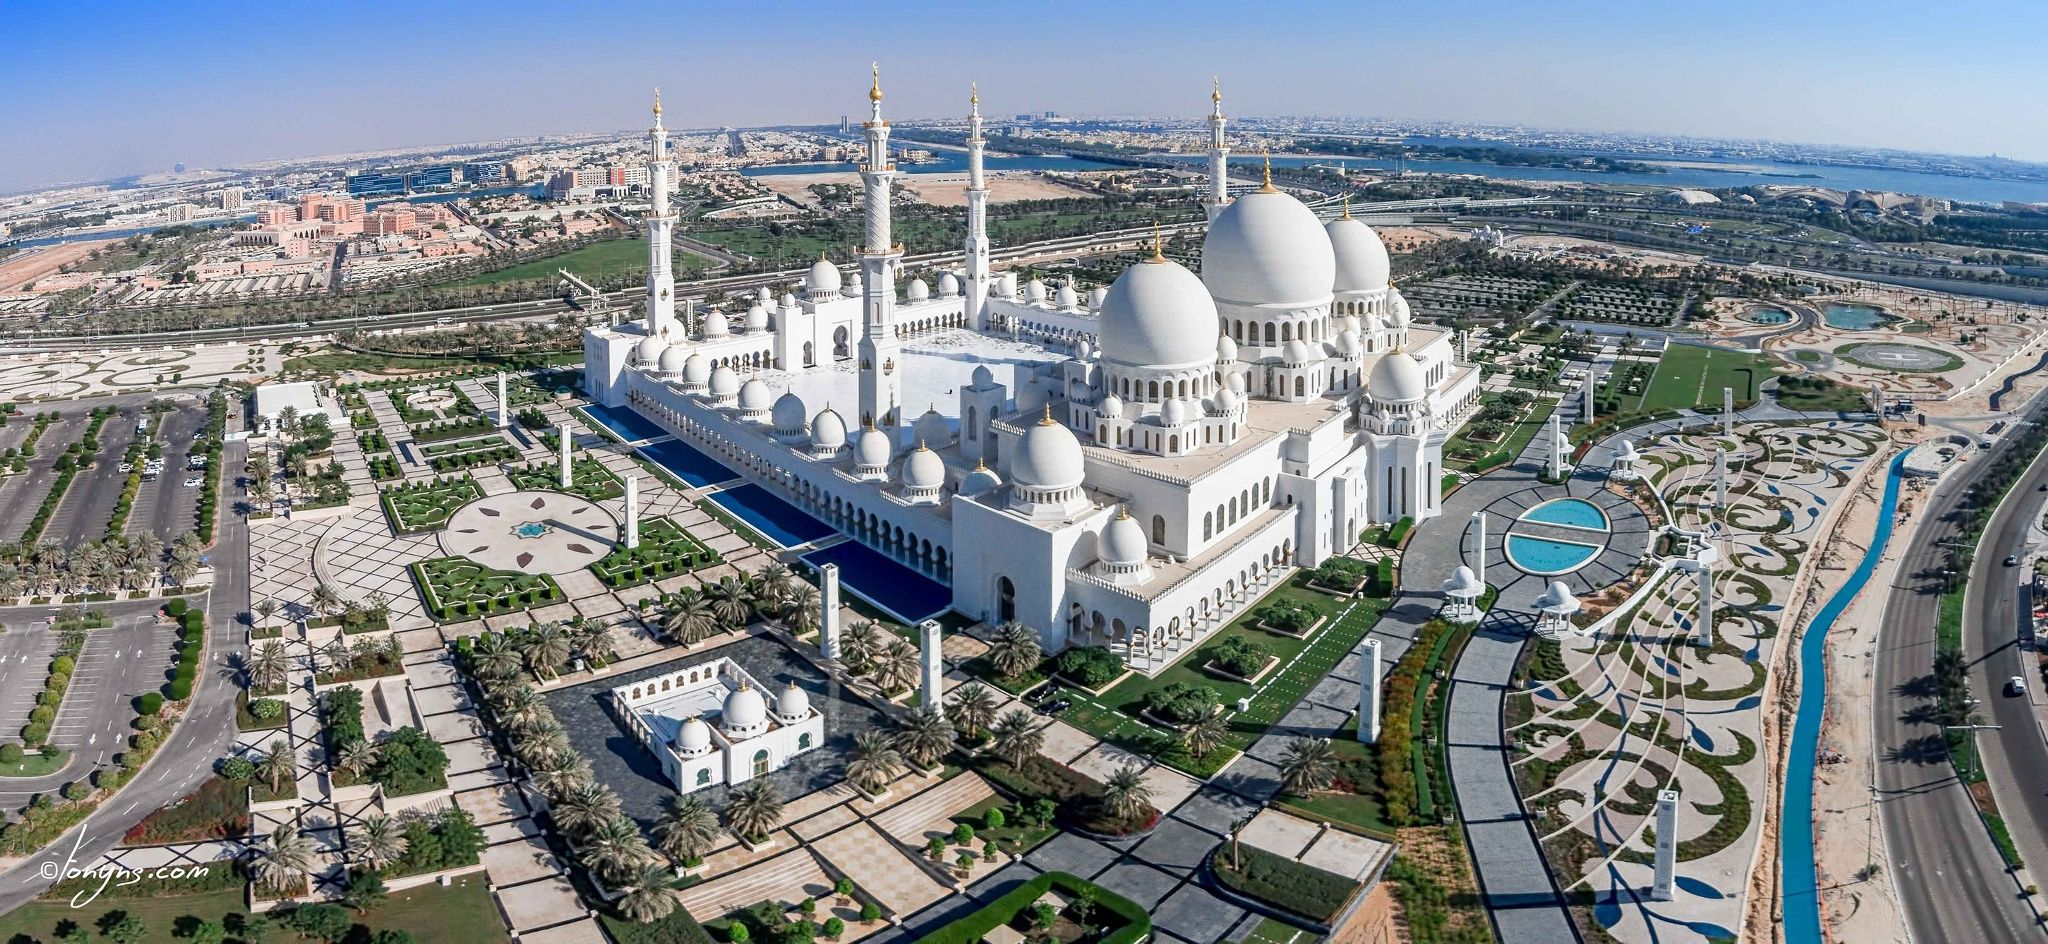 Grand Mosque - Abu Dhabi | Grand mosque, Sheikh zayed grand mosque, Mosque